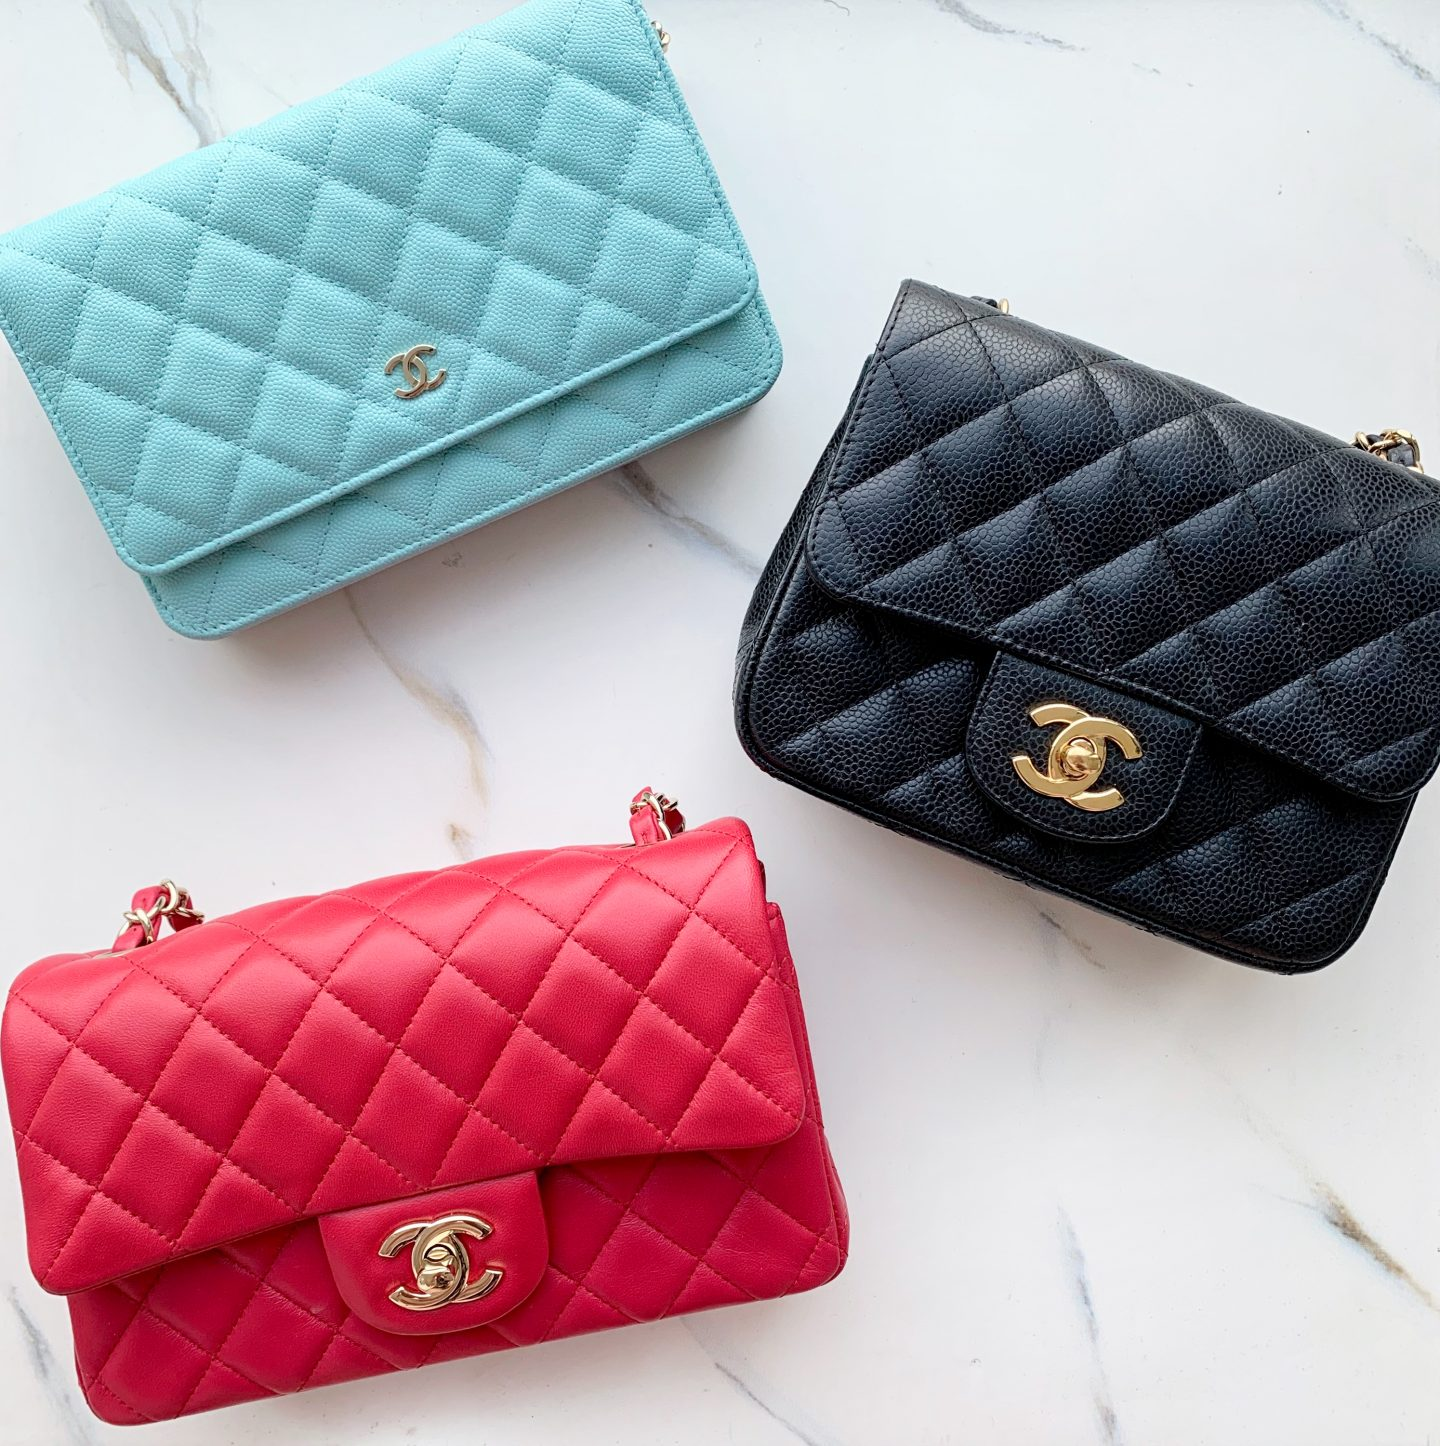 Mini Vs Woc The Best First Chanel Bag Chase Amie